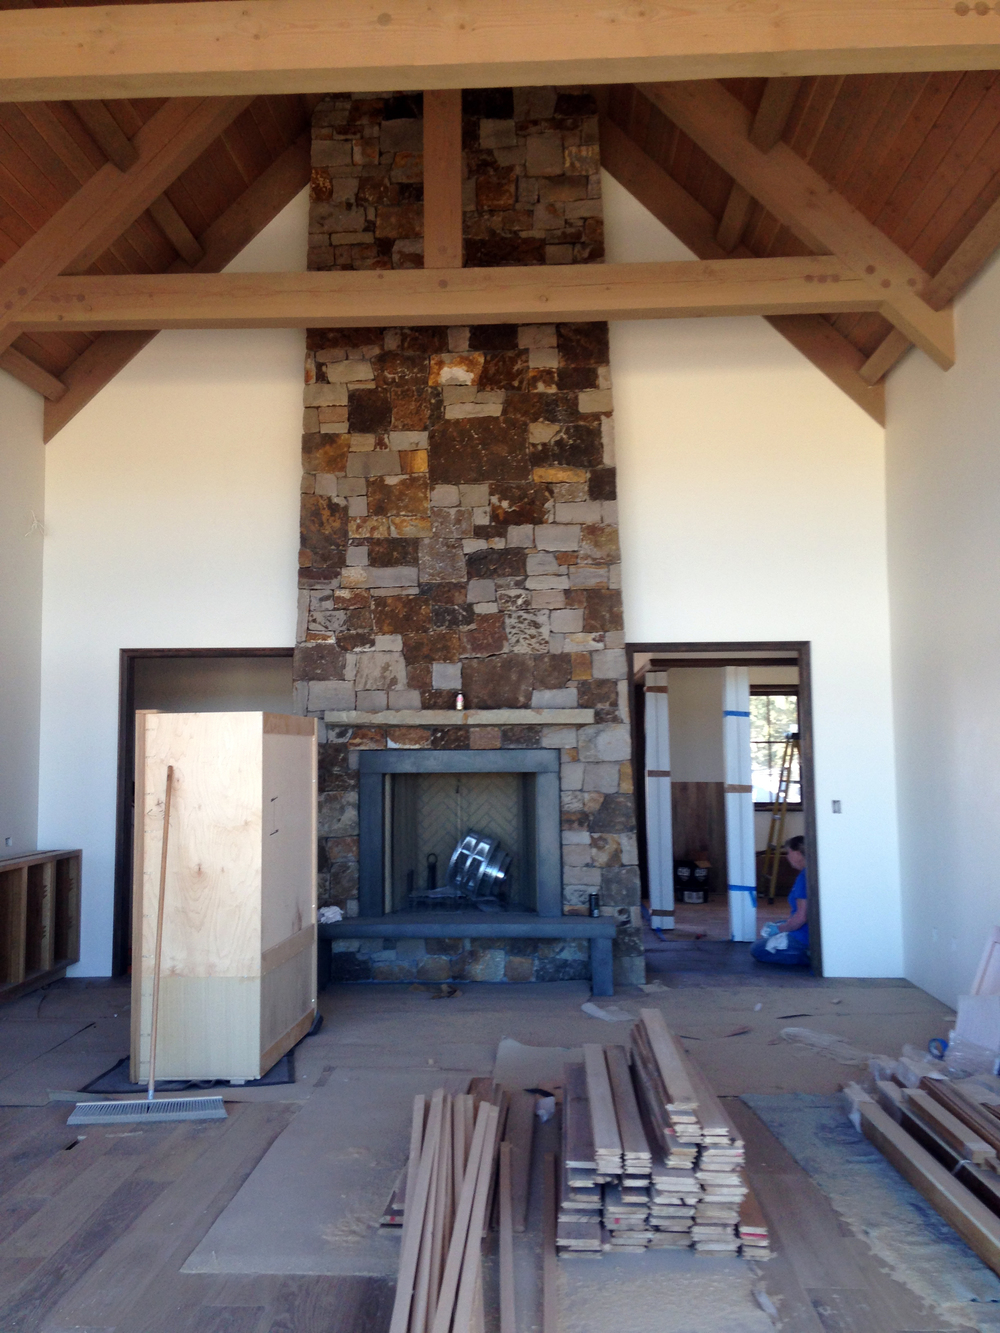 drw deschutes residence interior living room fireplace.JPG